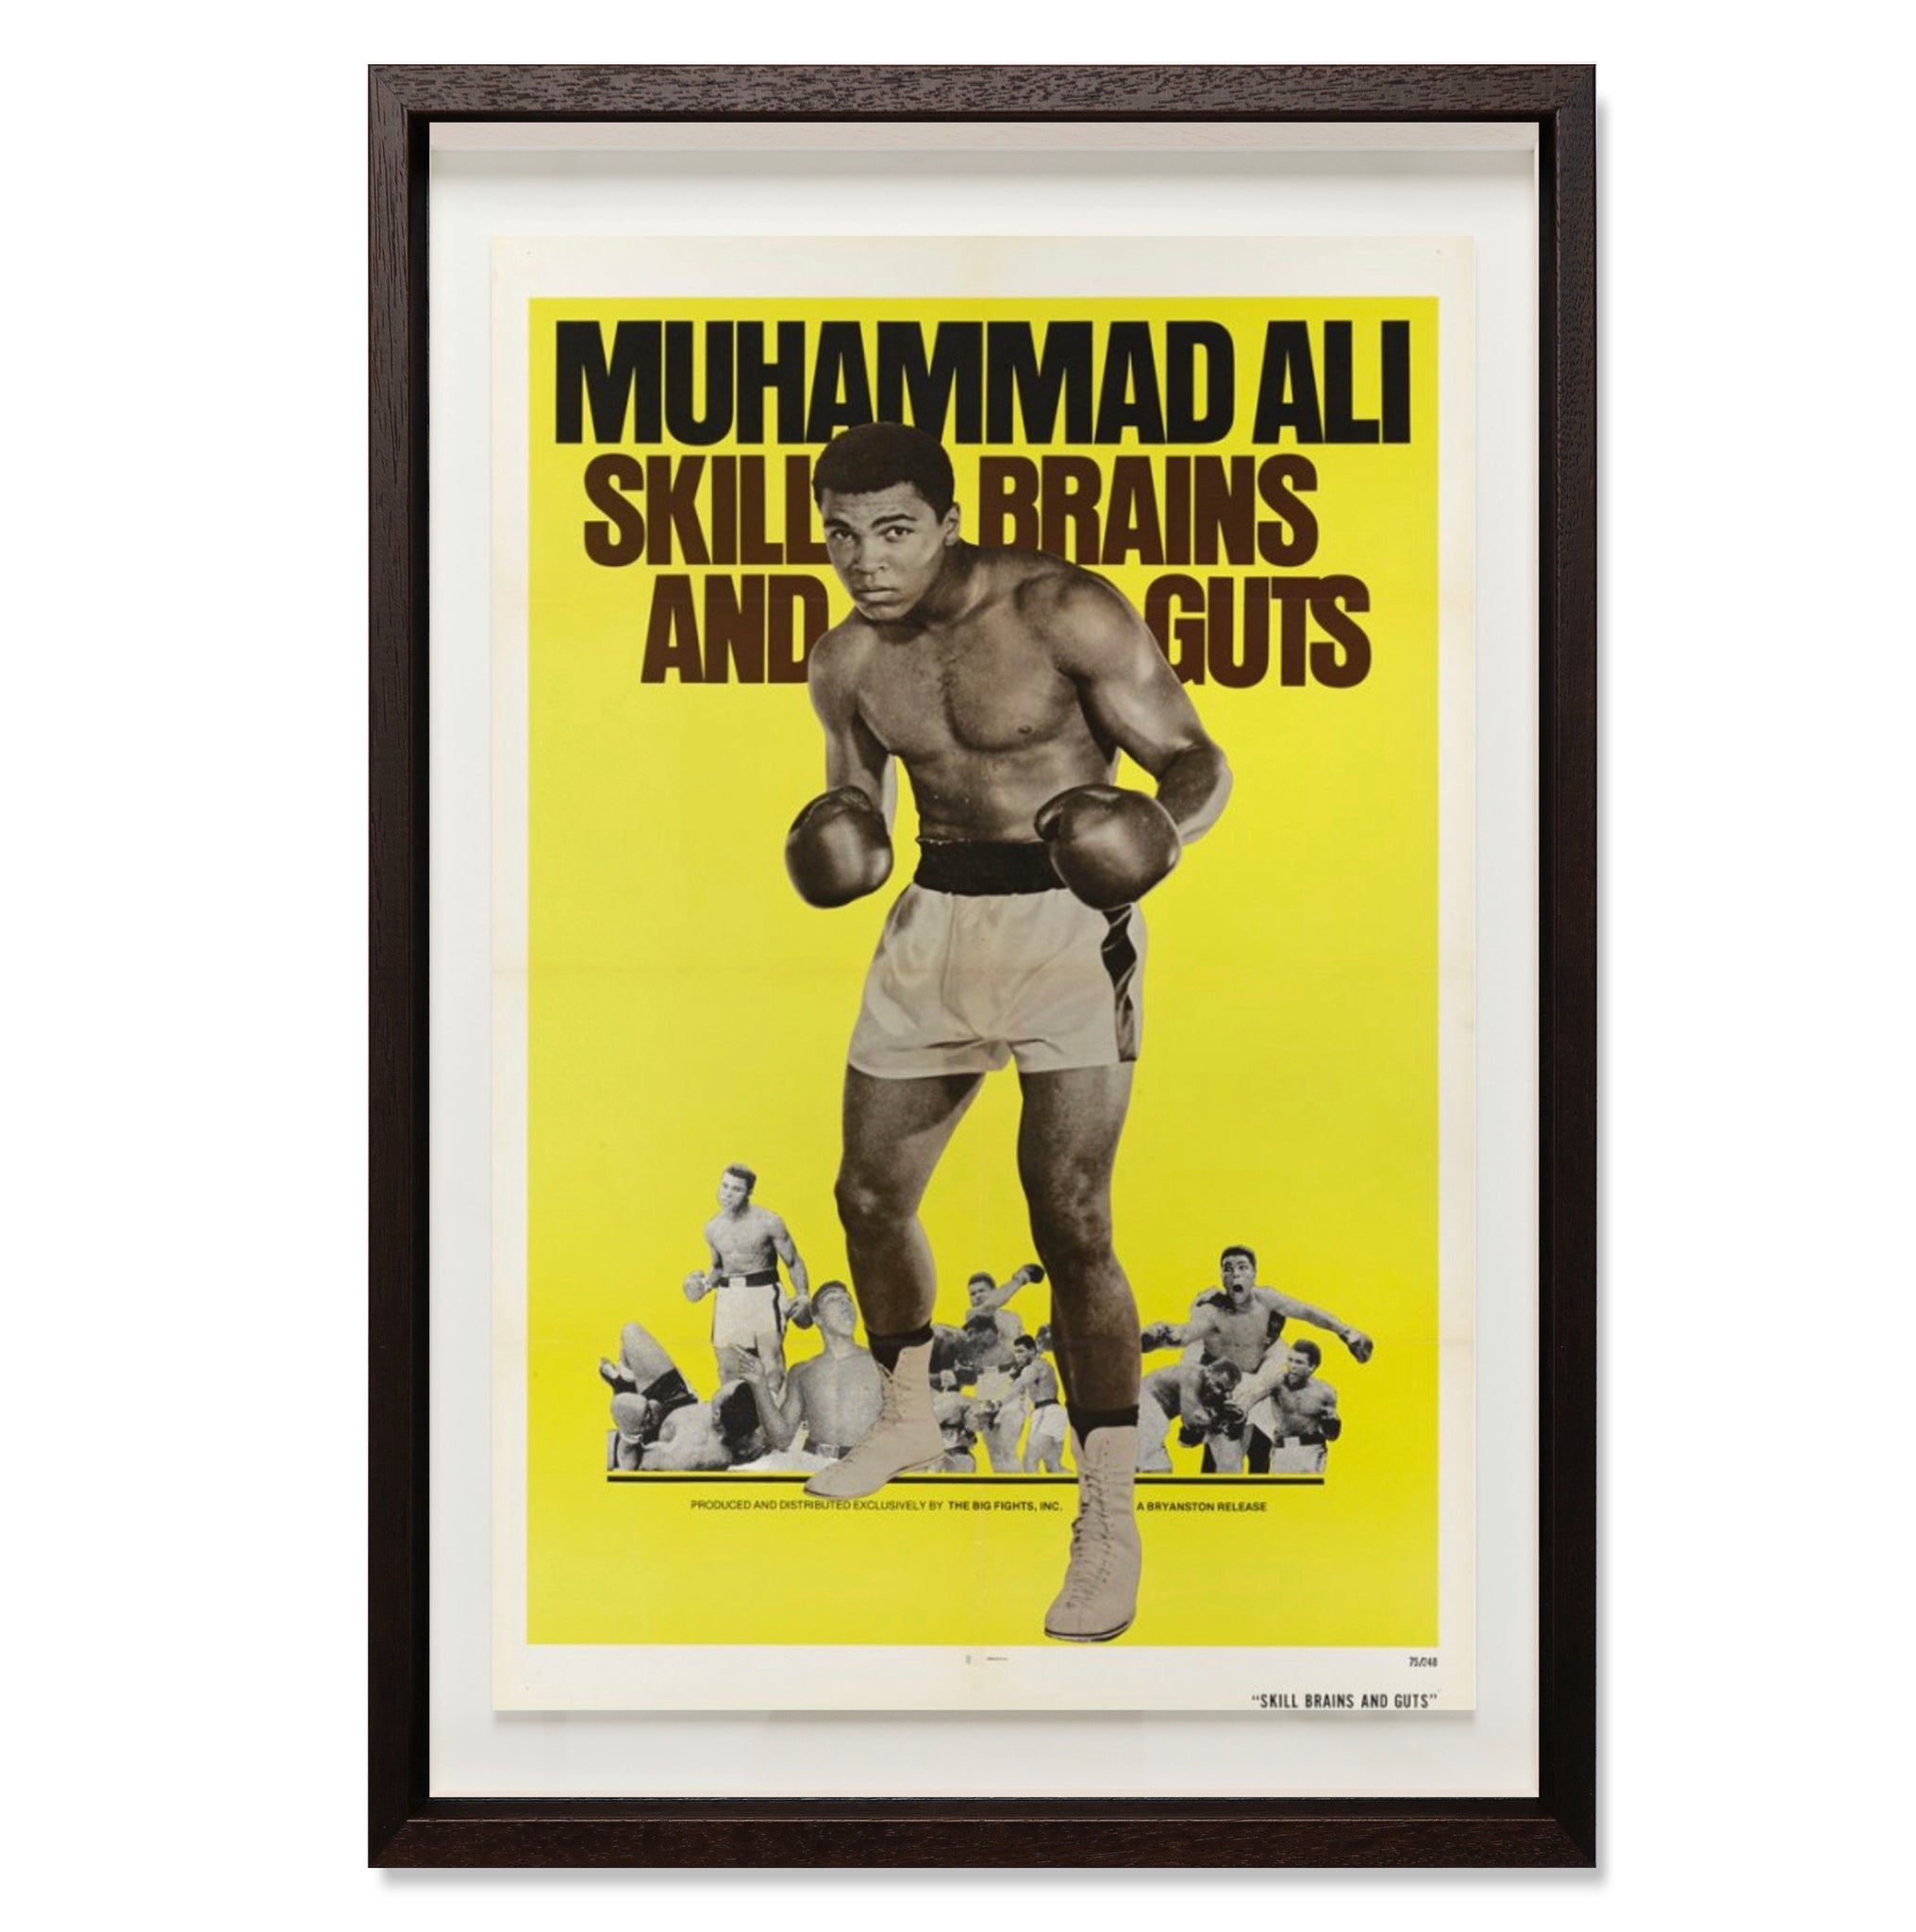 Muhammad Ali - Skill, Brains and Guts